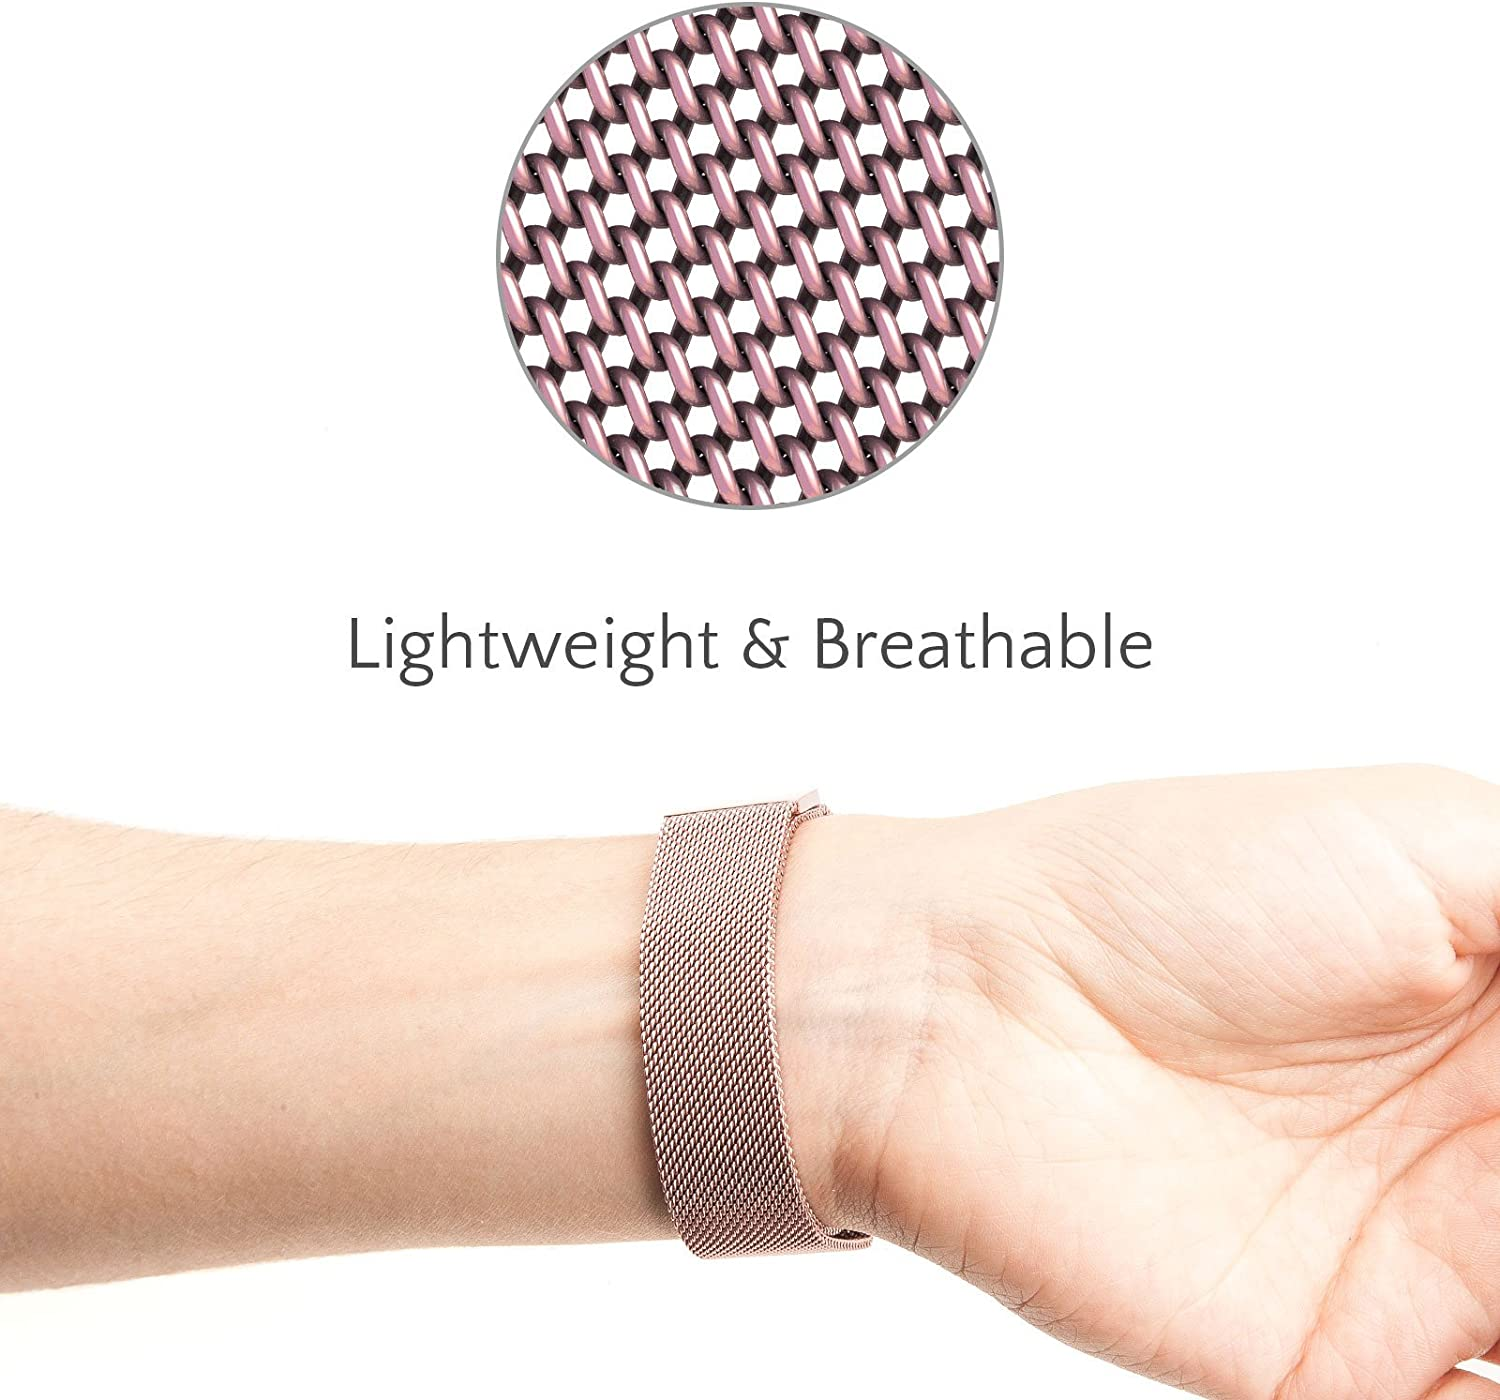 Metal Band Compatible For Charge 2 with Fully Adjustable Mesh Loop Design 9 Colours Available Proworks Replacement Strap Compatible For FitBit Charge 2 Brushed Stainless Steel Magnetic Wristband For Men /& Women